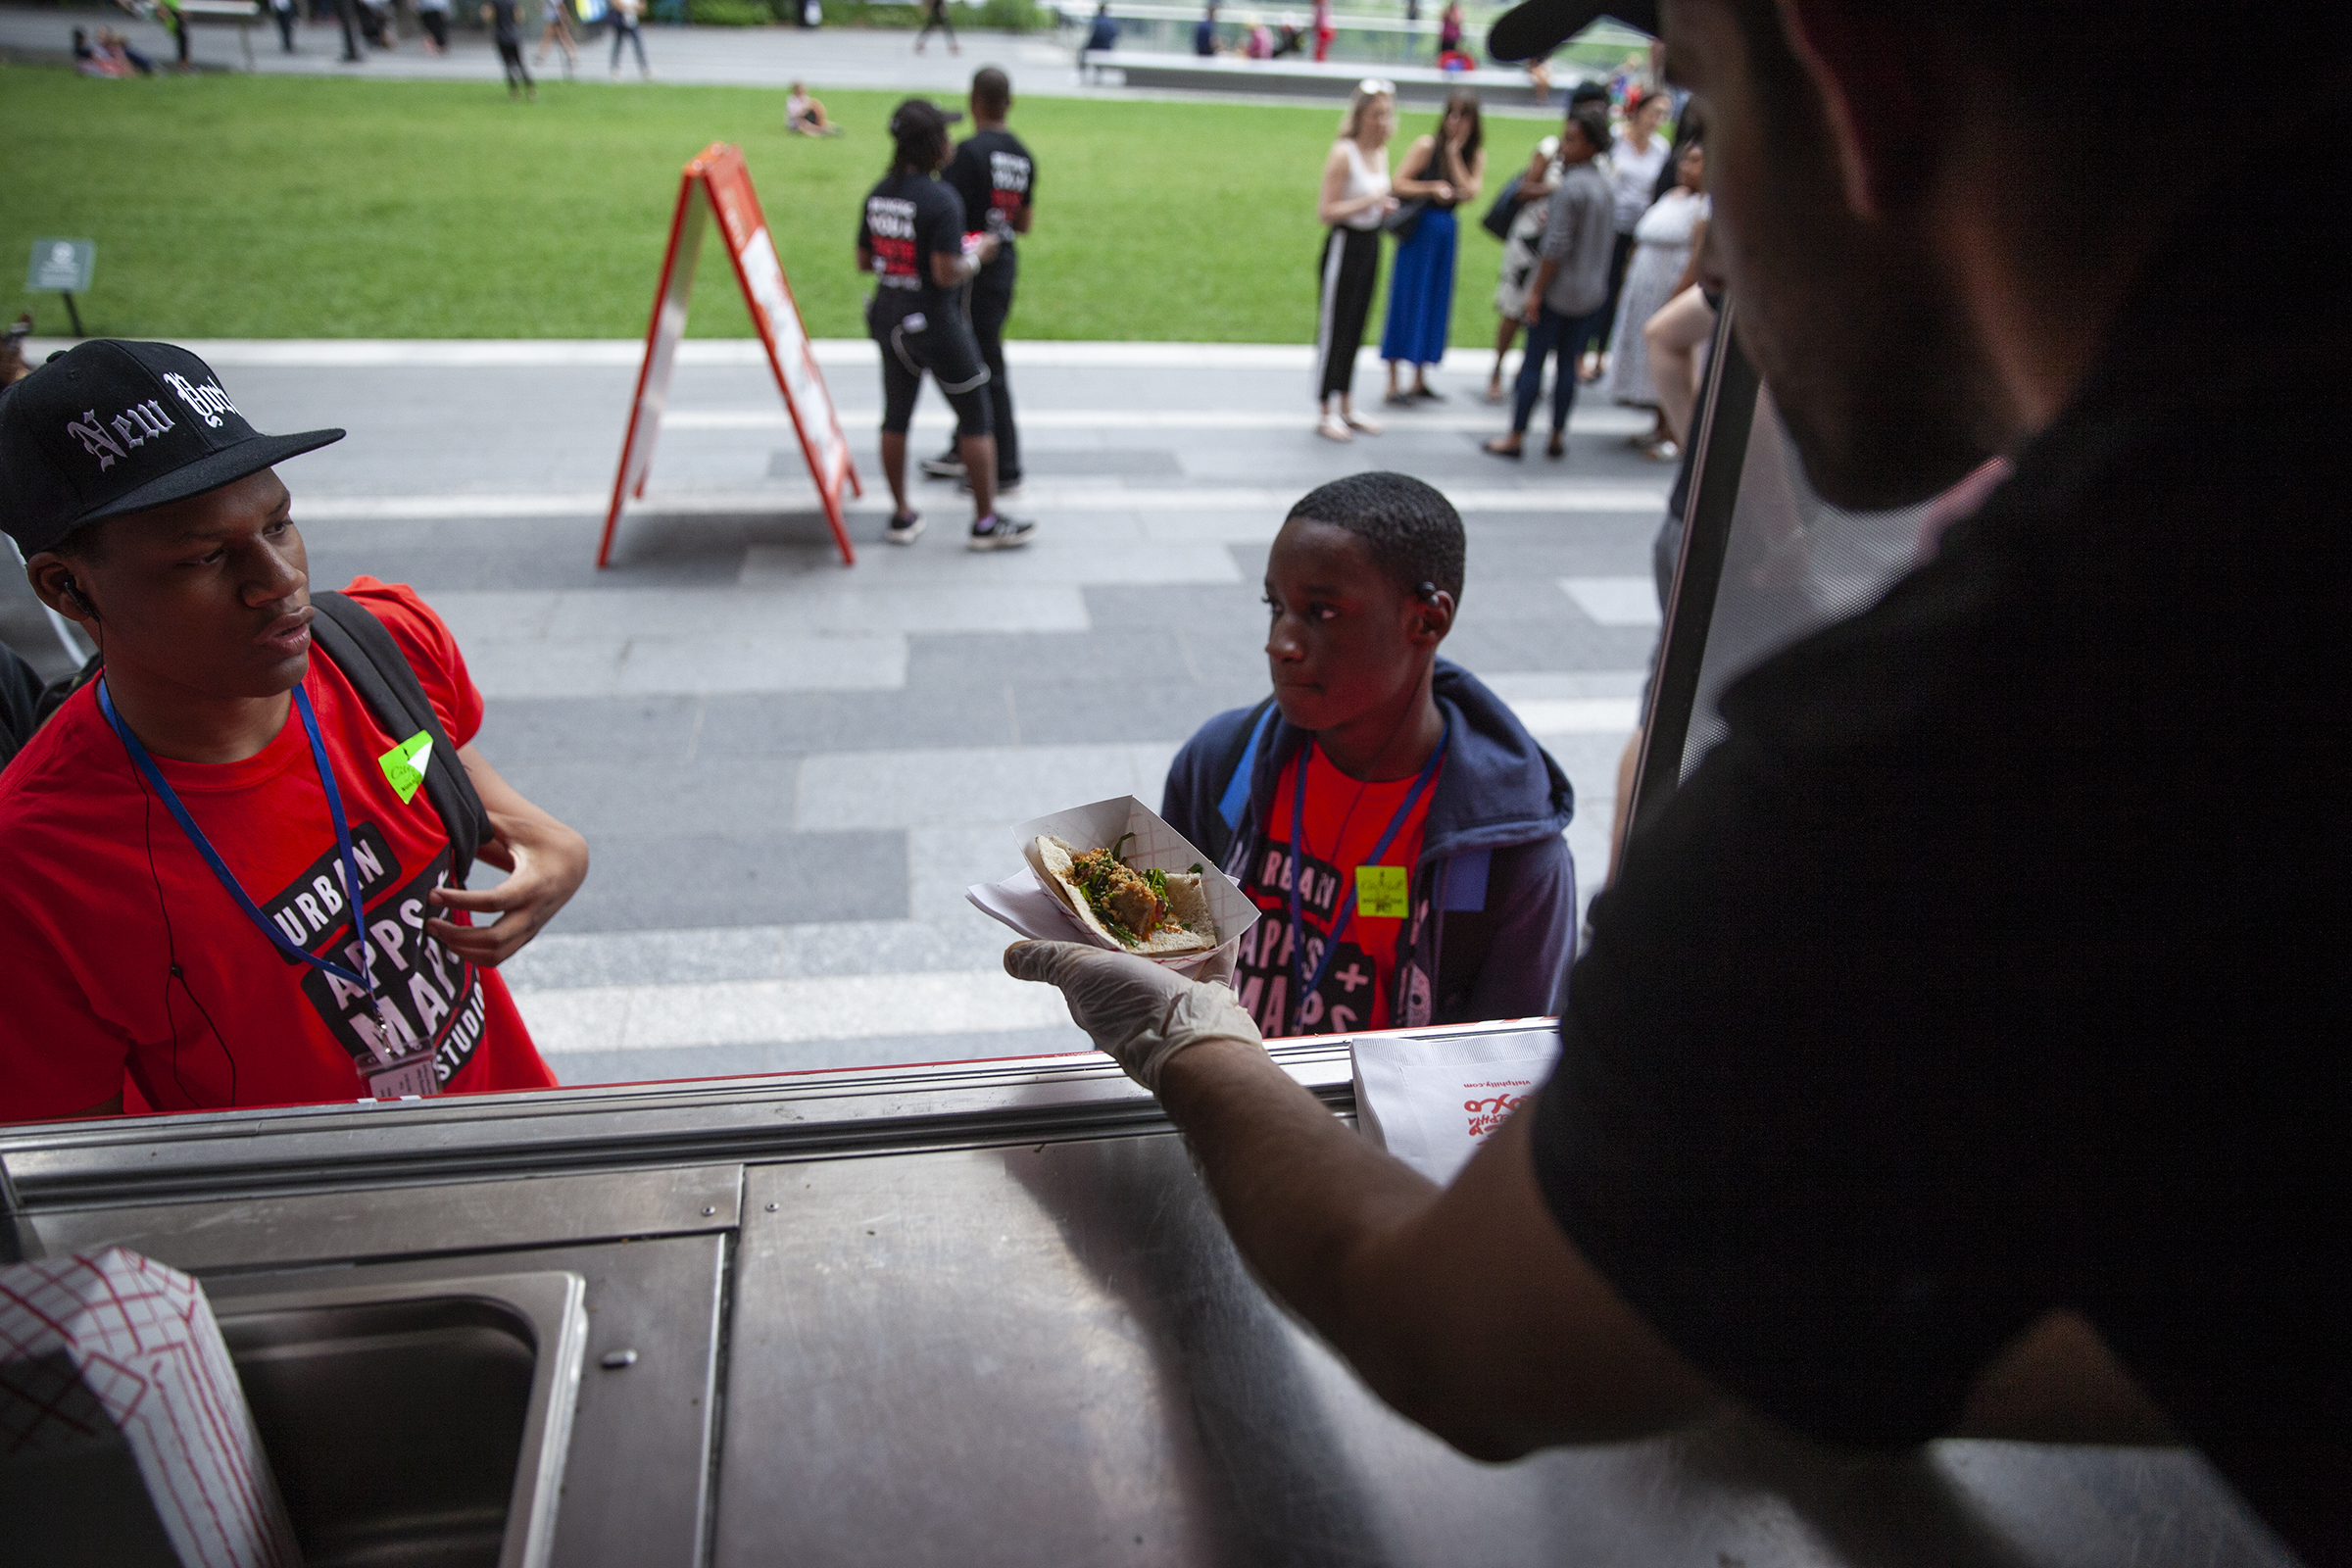 Anthony Strelzick serves food out of the Visit Philadelphia food truck parked in Dilworth Plaza at City Hall.